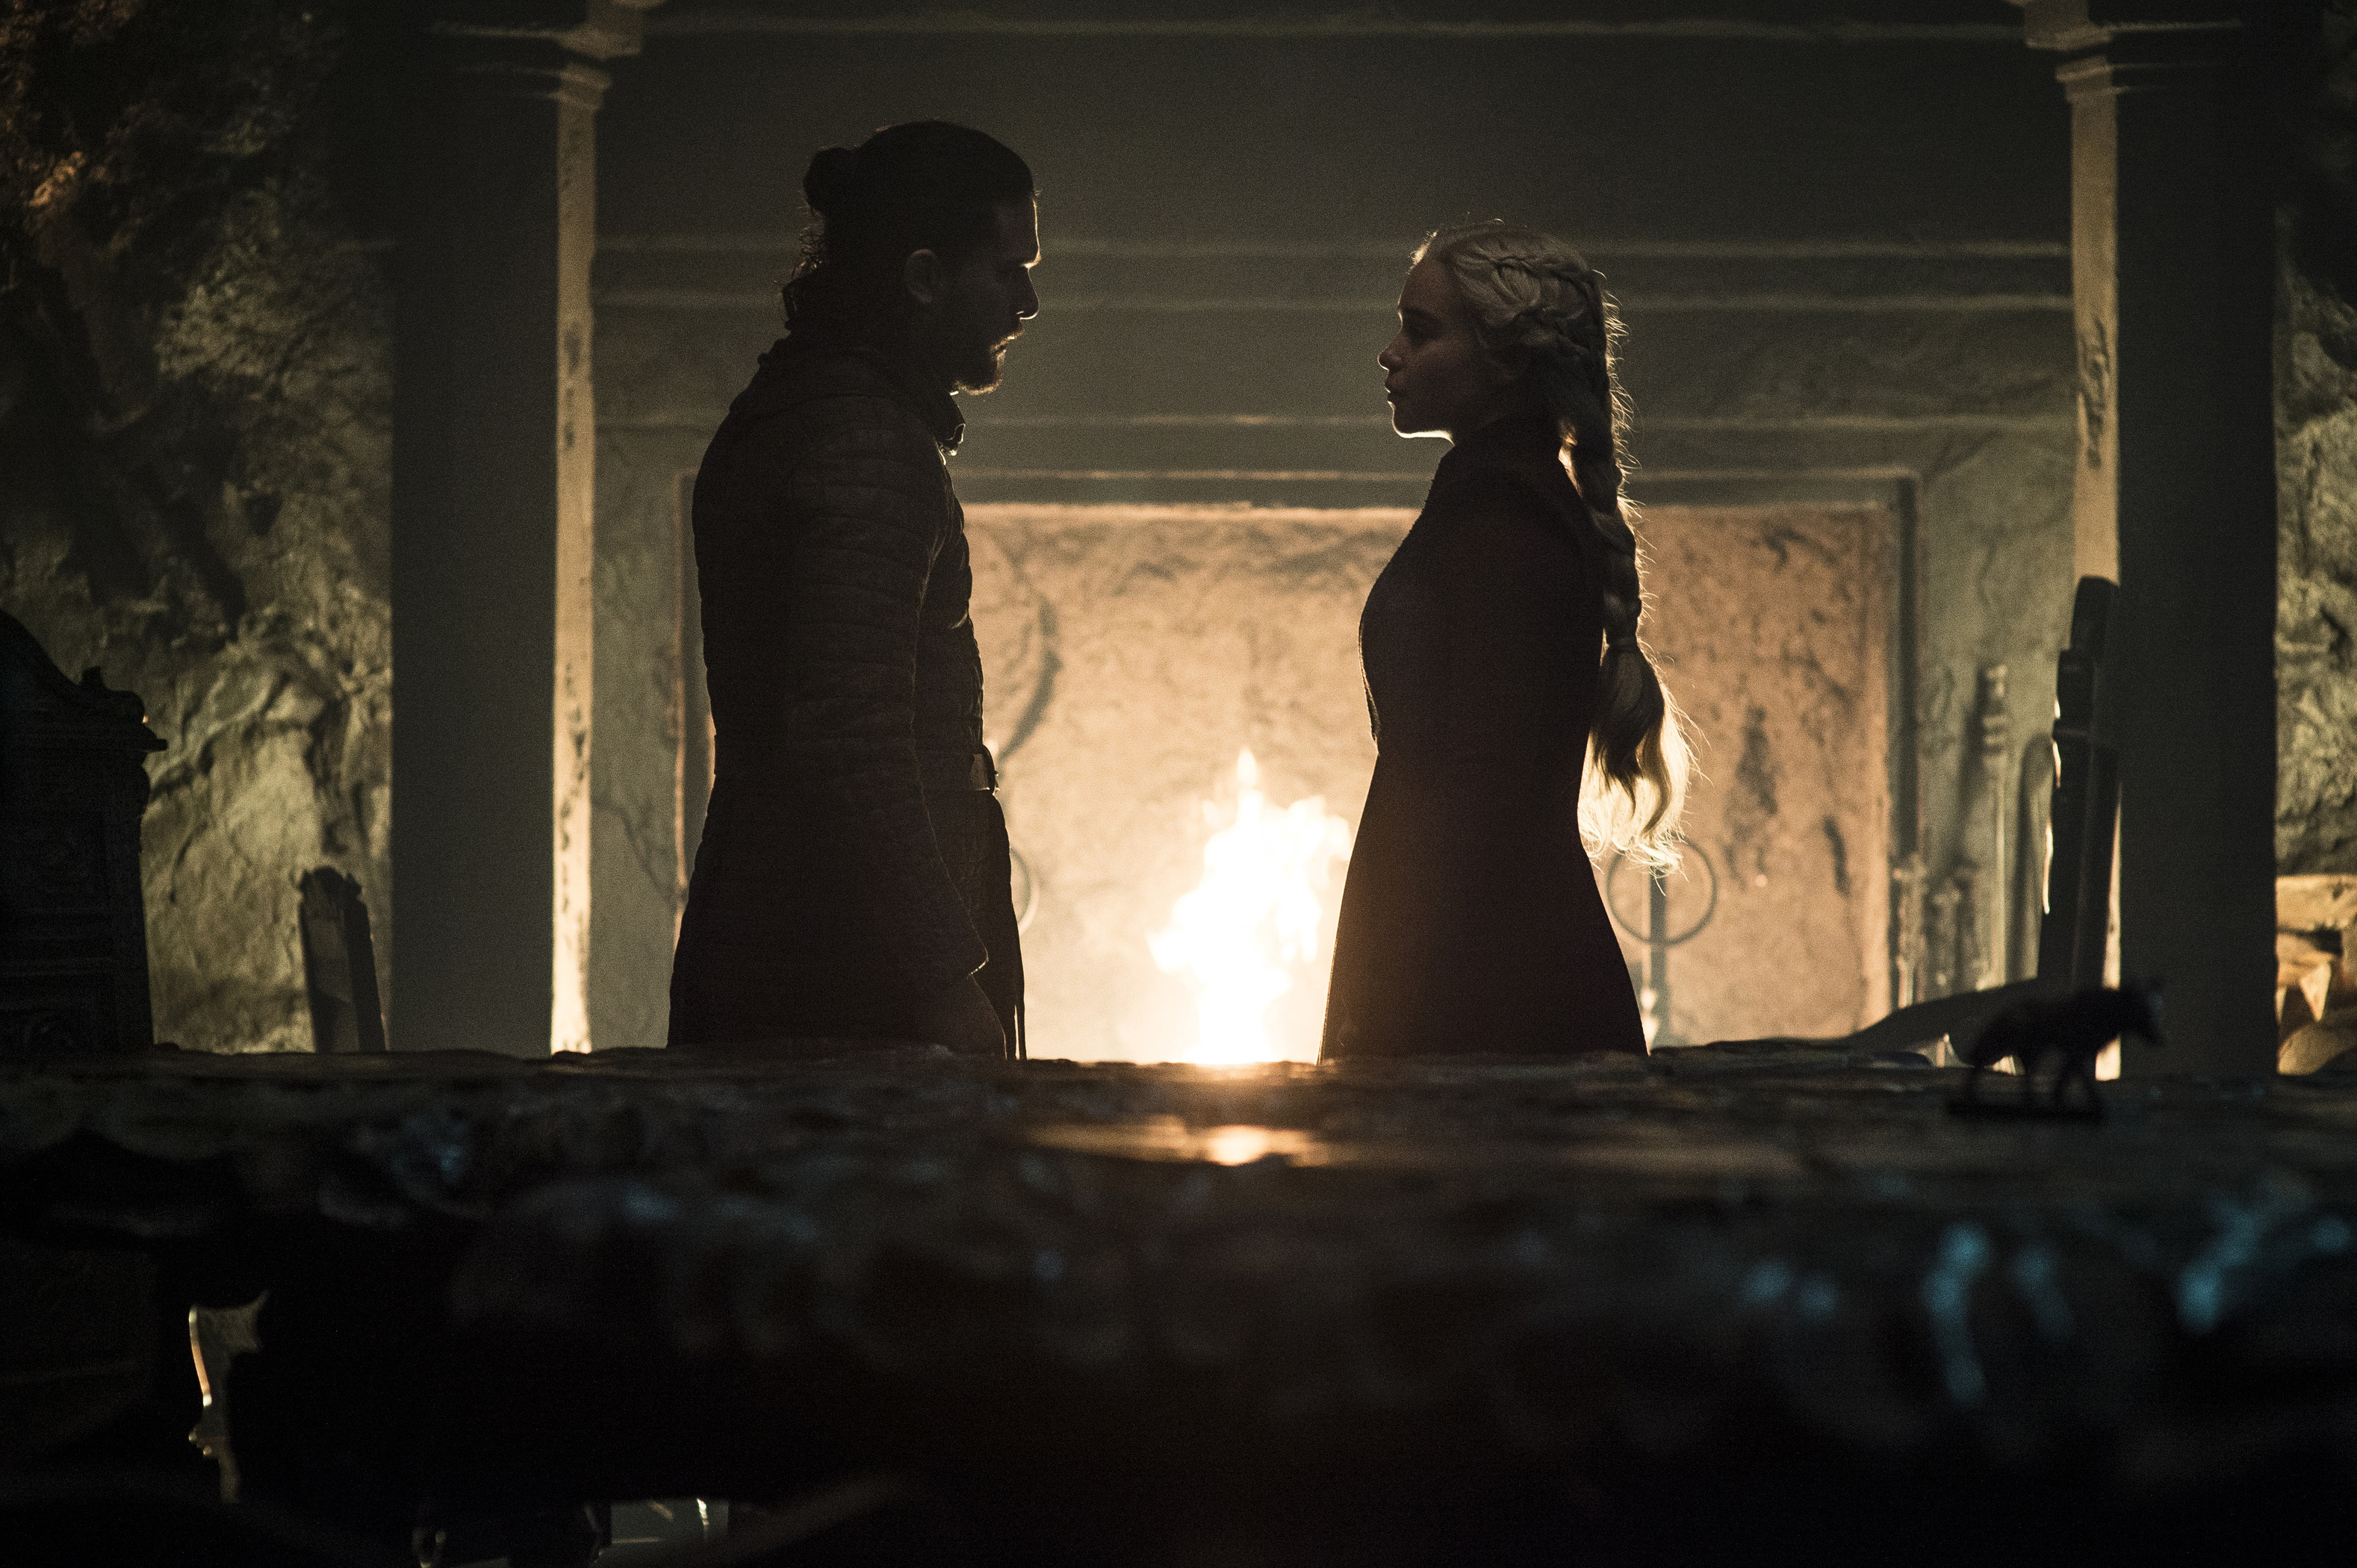 Jon and Dany stare into each others eyes